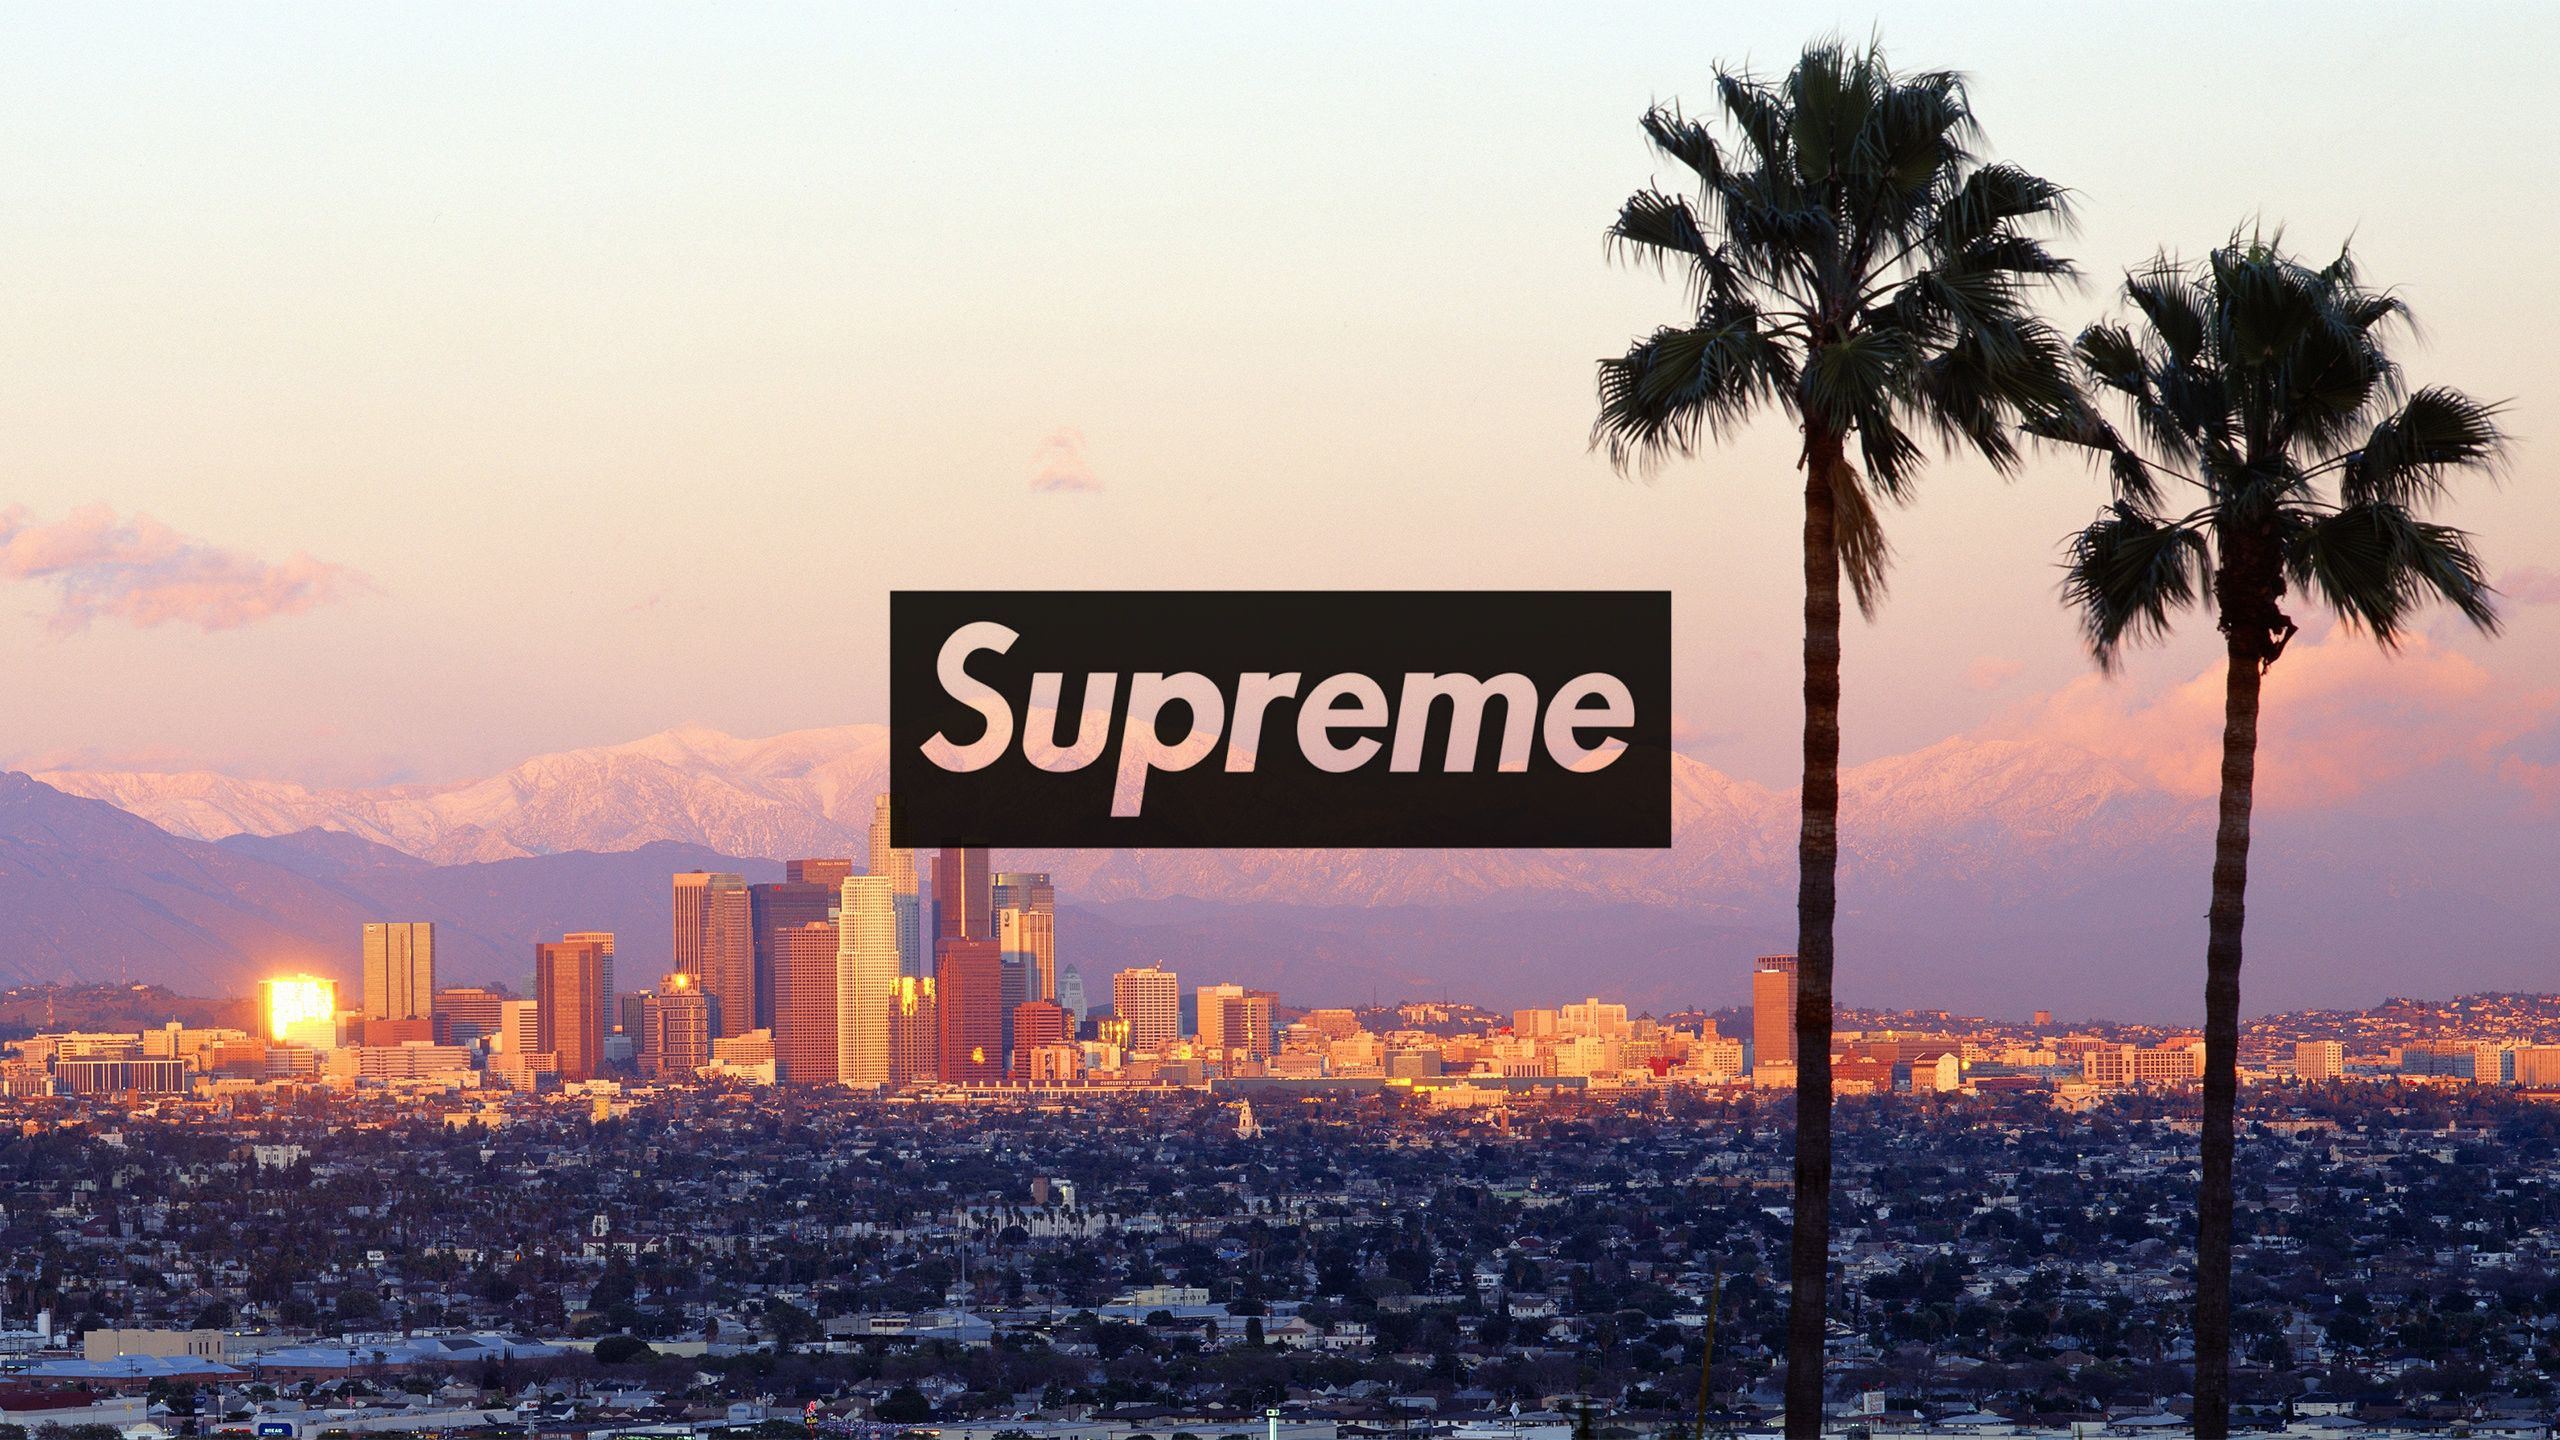 2560x1440 Download the Los Angeles Supreme wallpaper below for 2560x1440